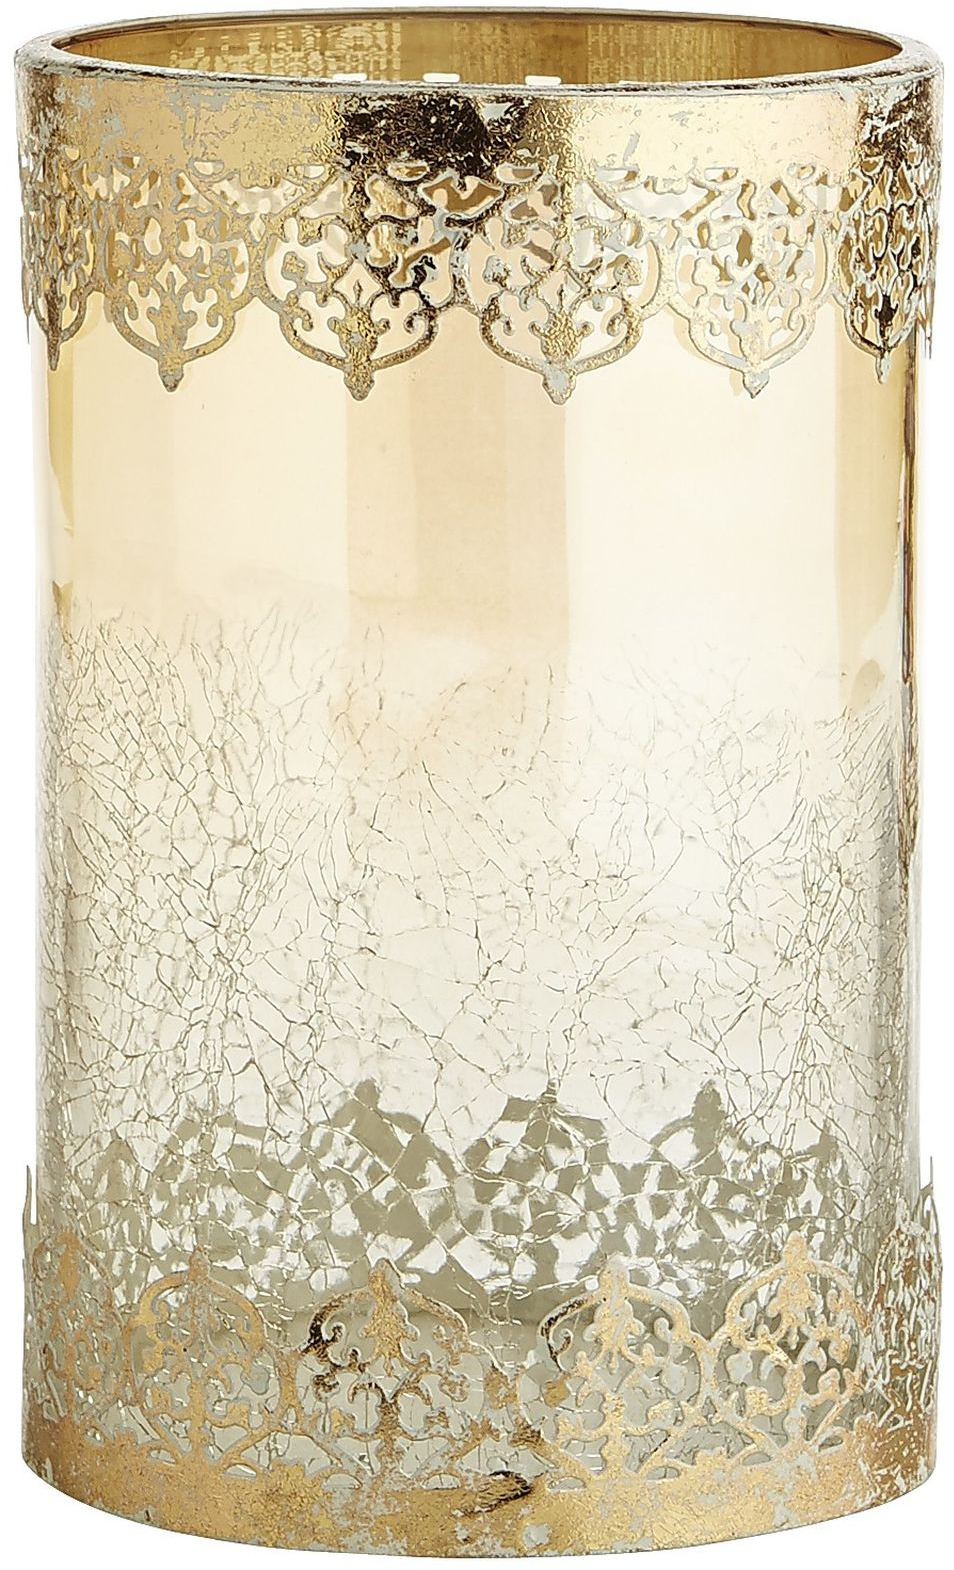 Amber Lace Trimmed Hurricane Candle Holder | Pier 1 Imports